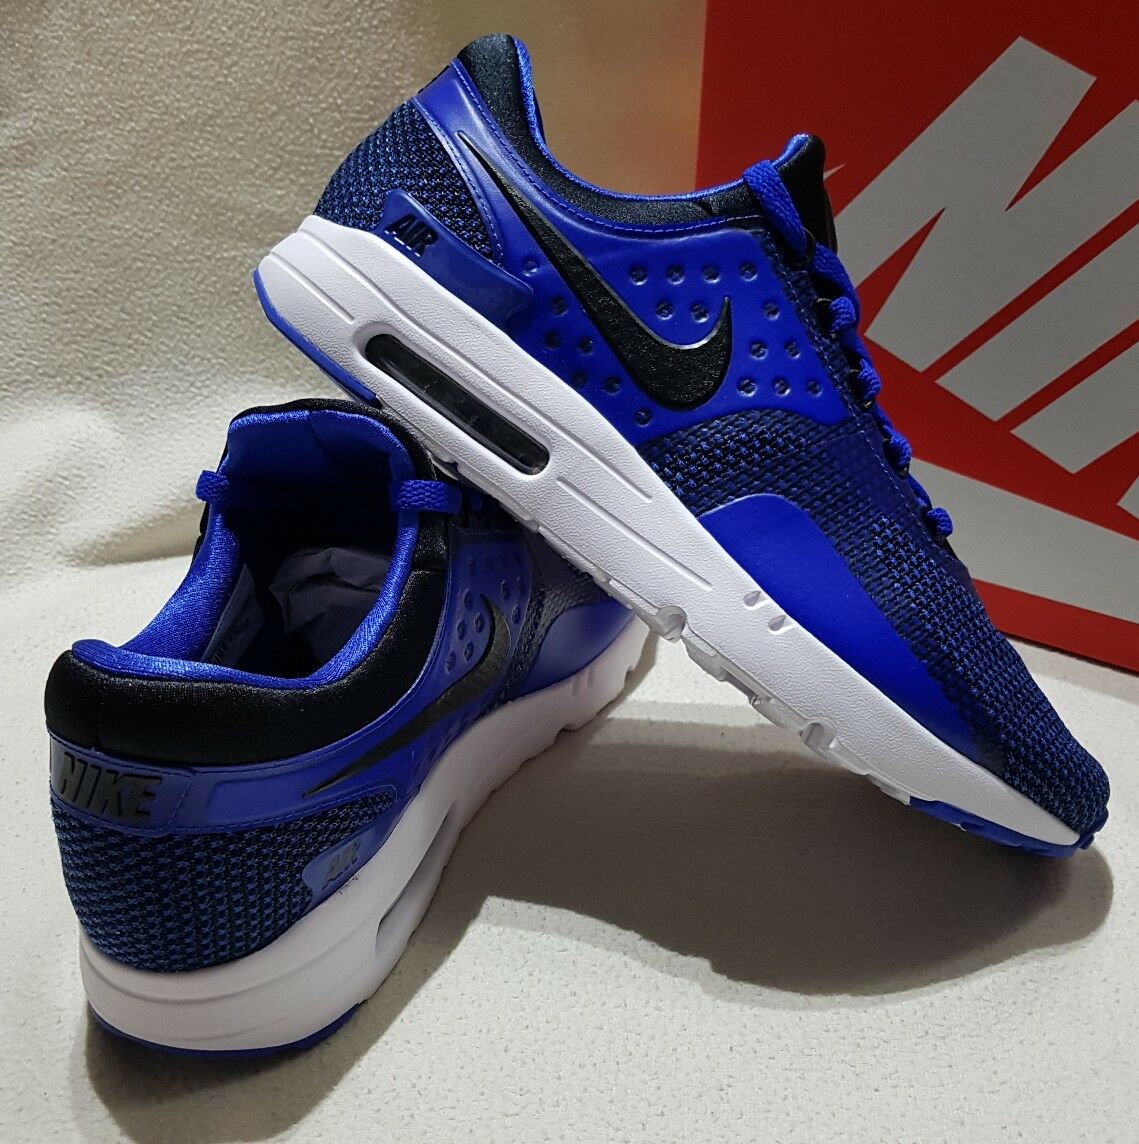 NIKE AIR MAX ZERO ESSENTIAL MEN'S TRAINERS SNEAKERS BLUE 876070 001 -10